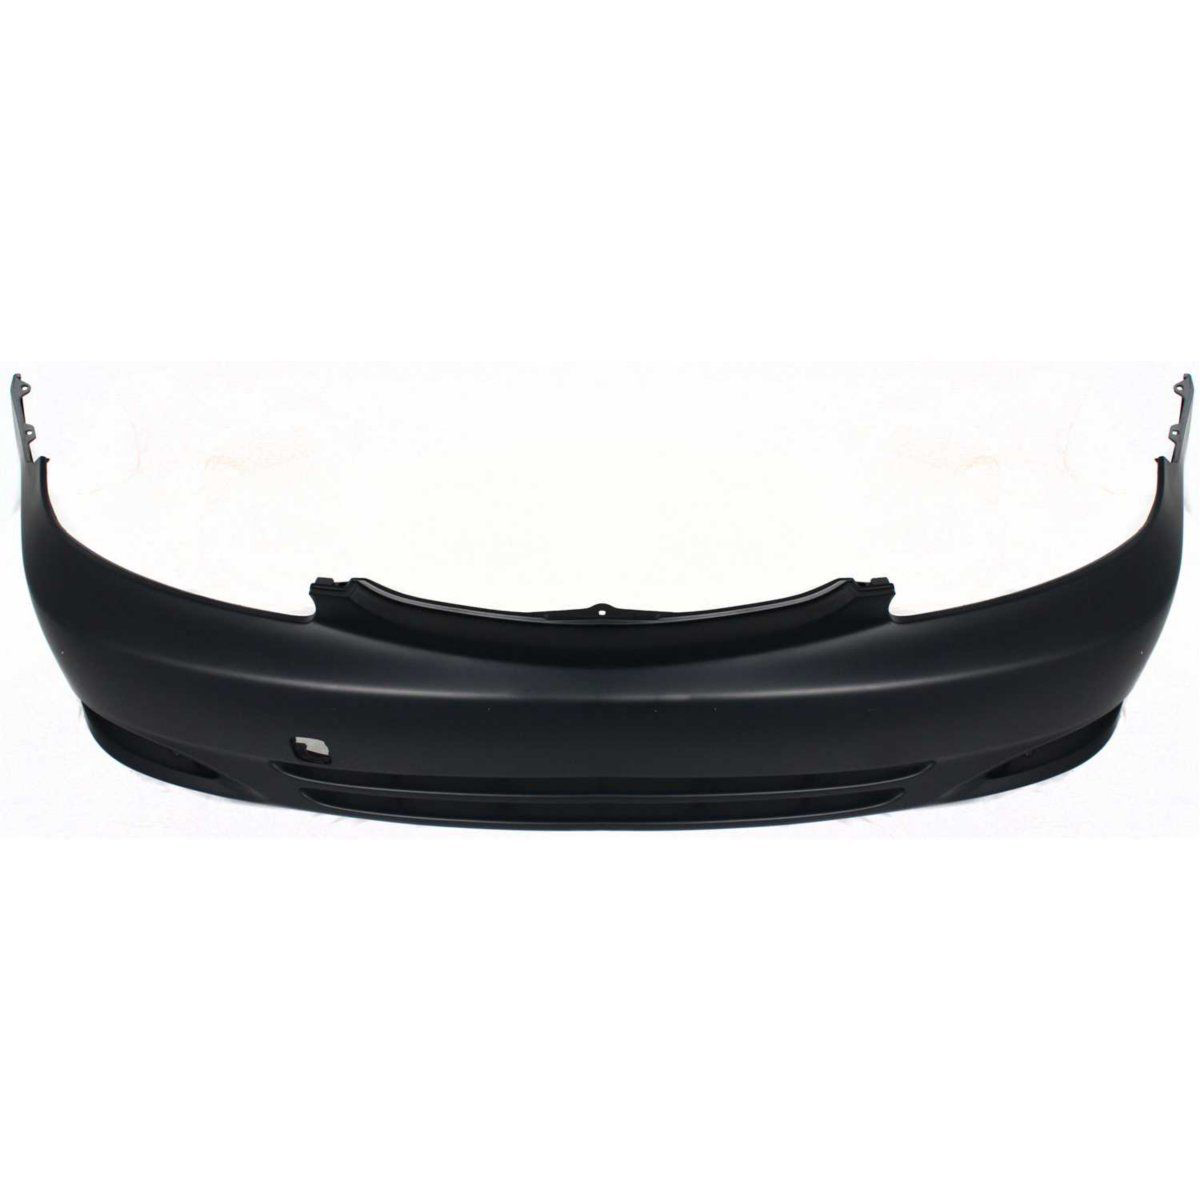 2002-2005 TOYOTA CAMRY Front Bumper Cover Japan built Painted to Match